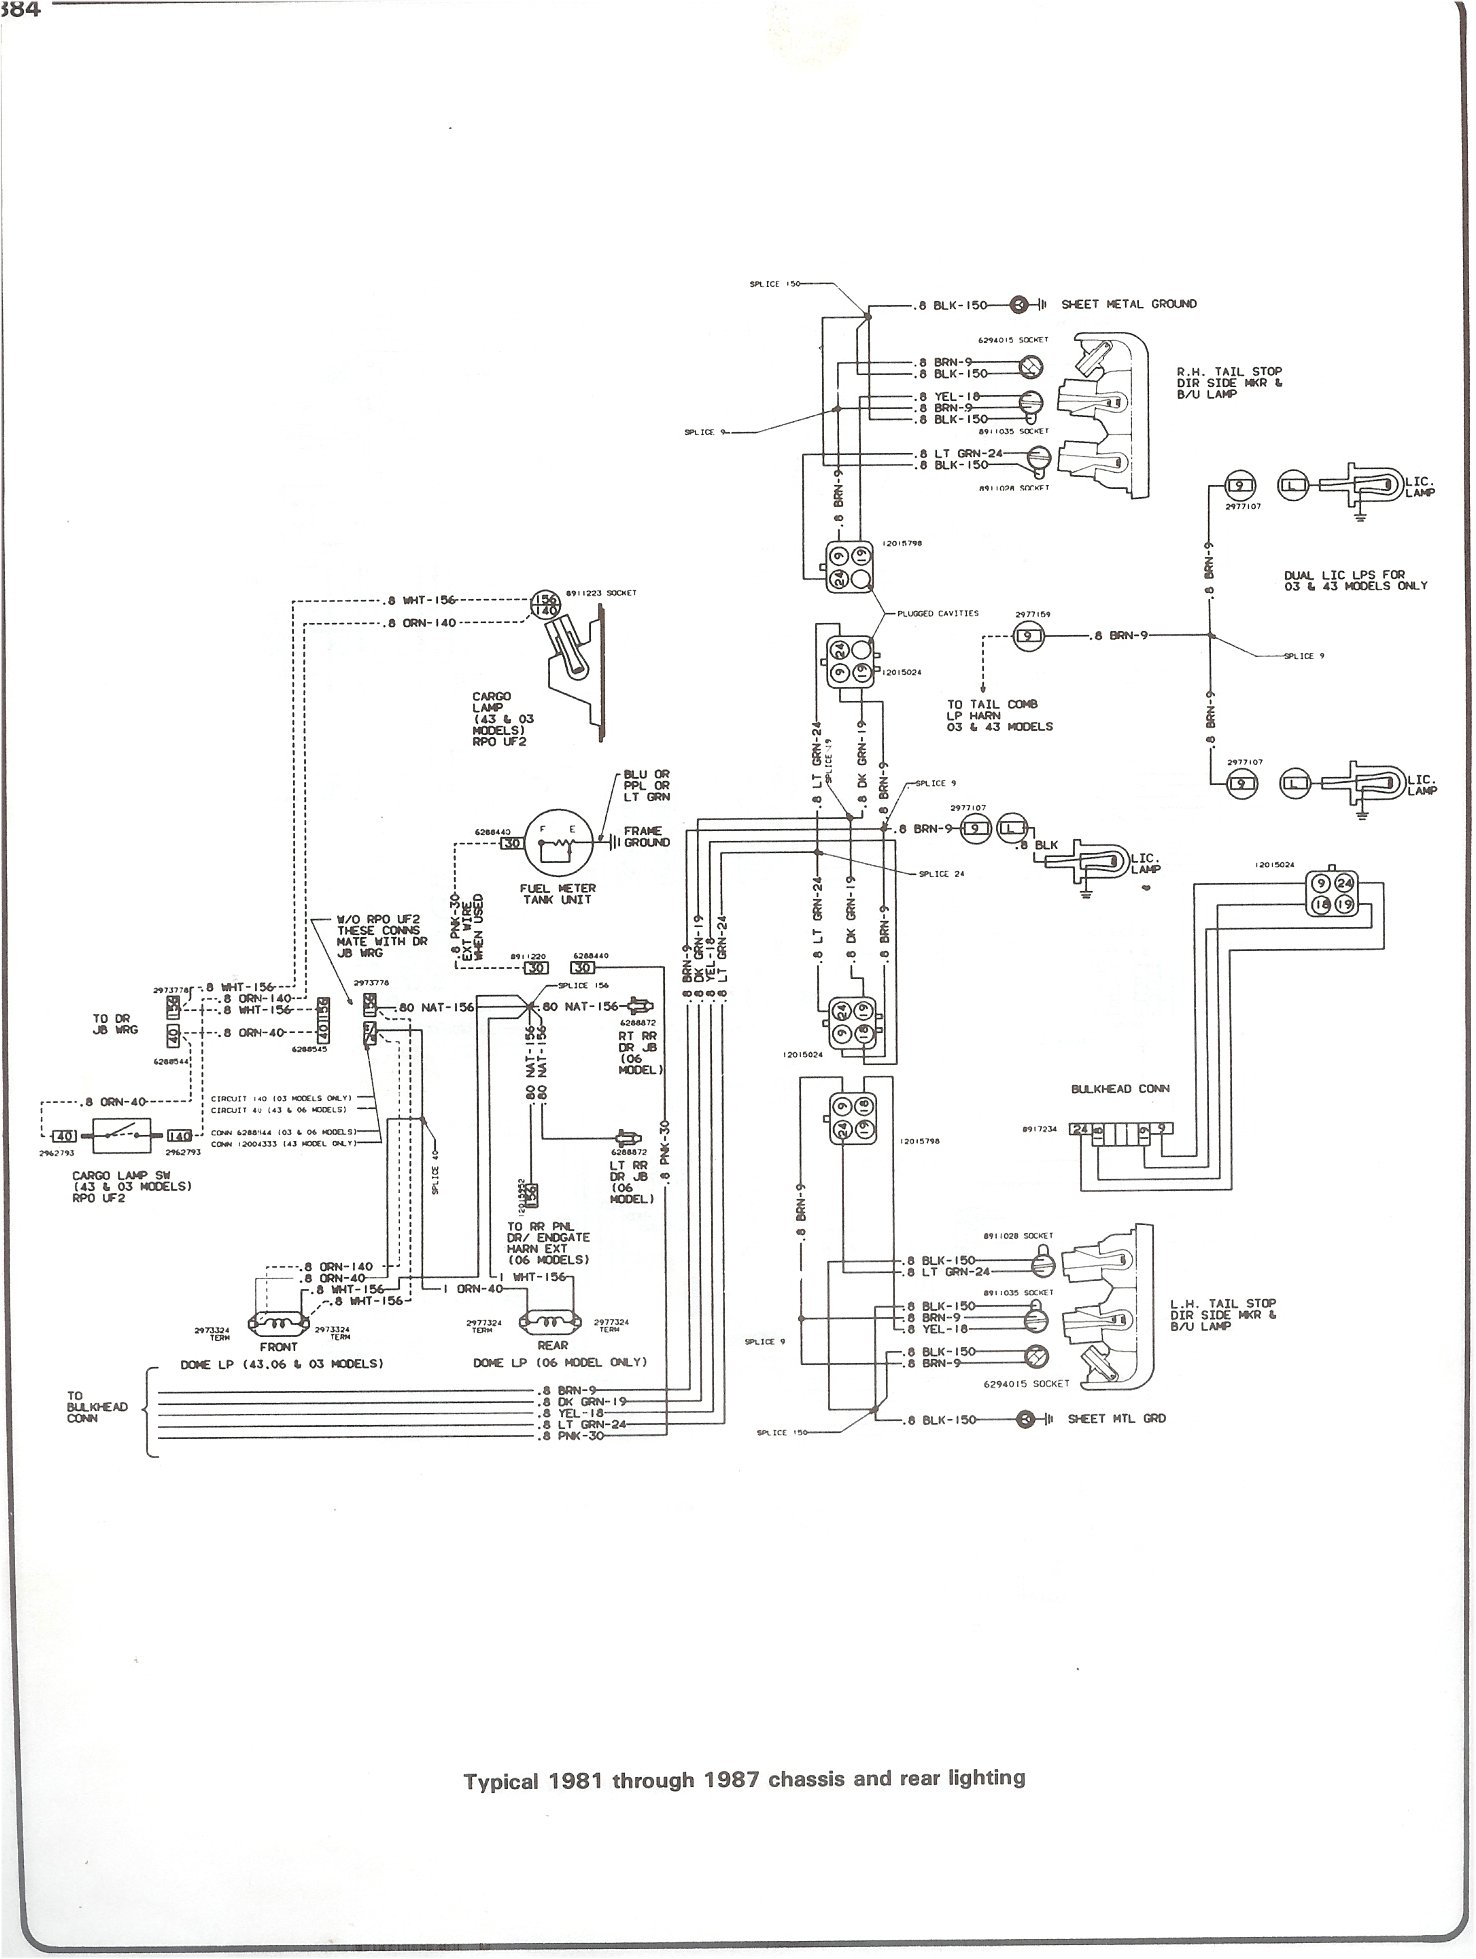 75 chevy wiring diagram